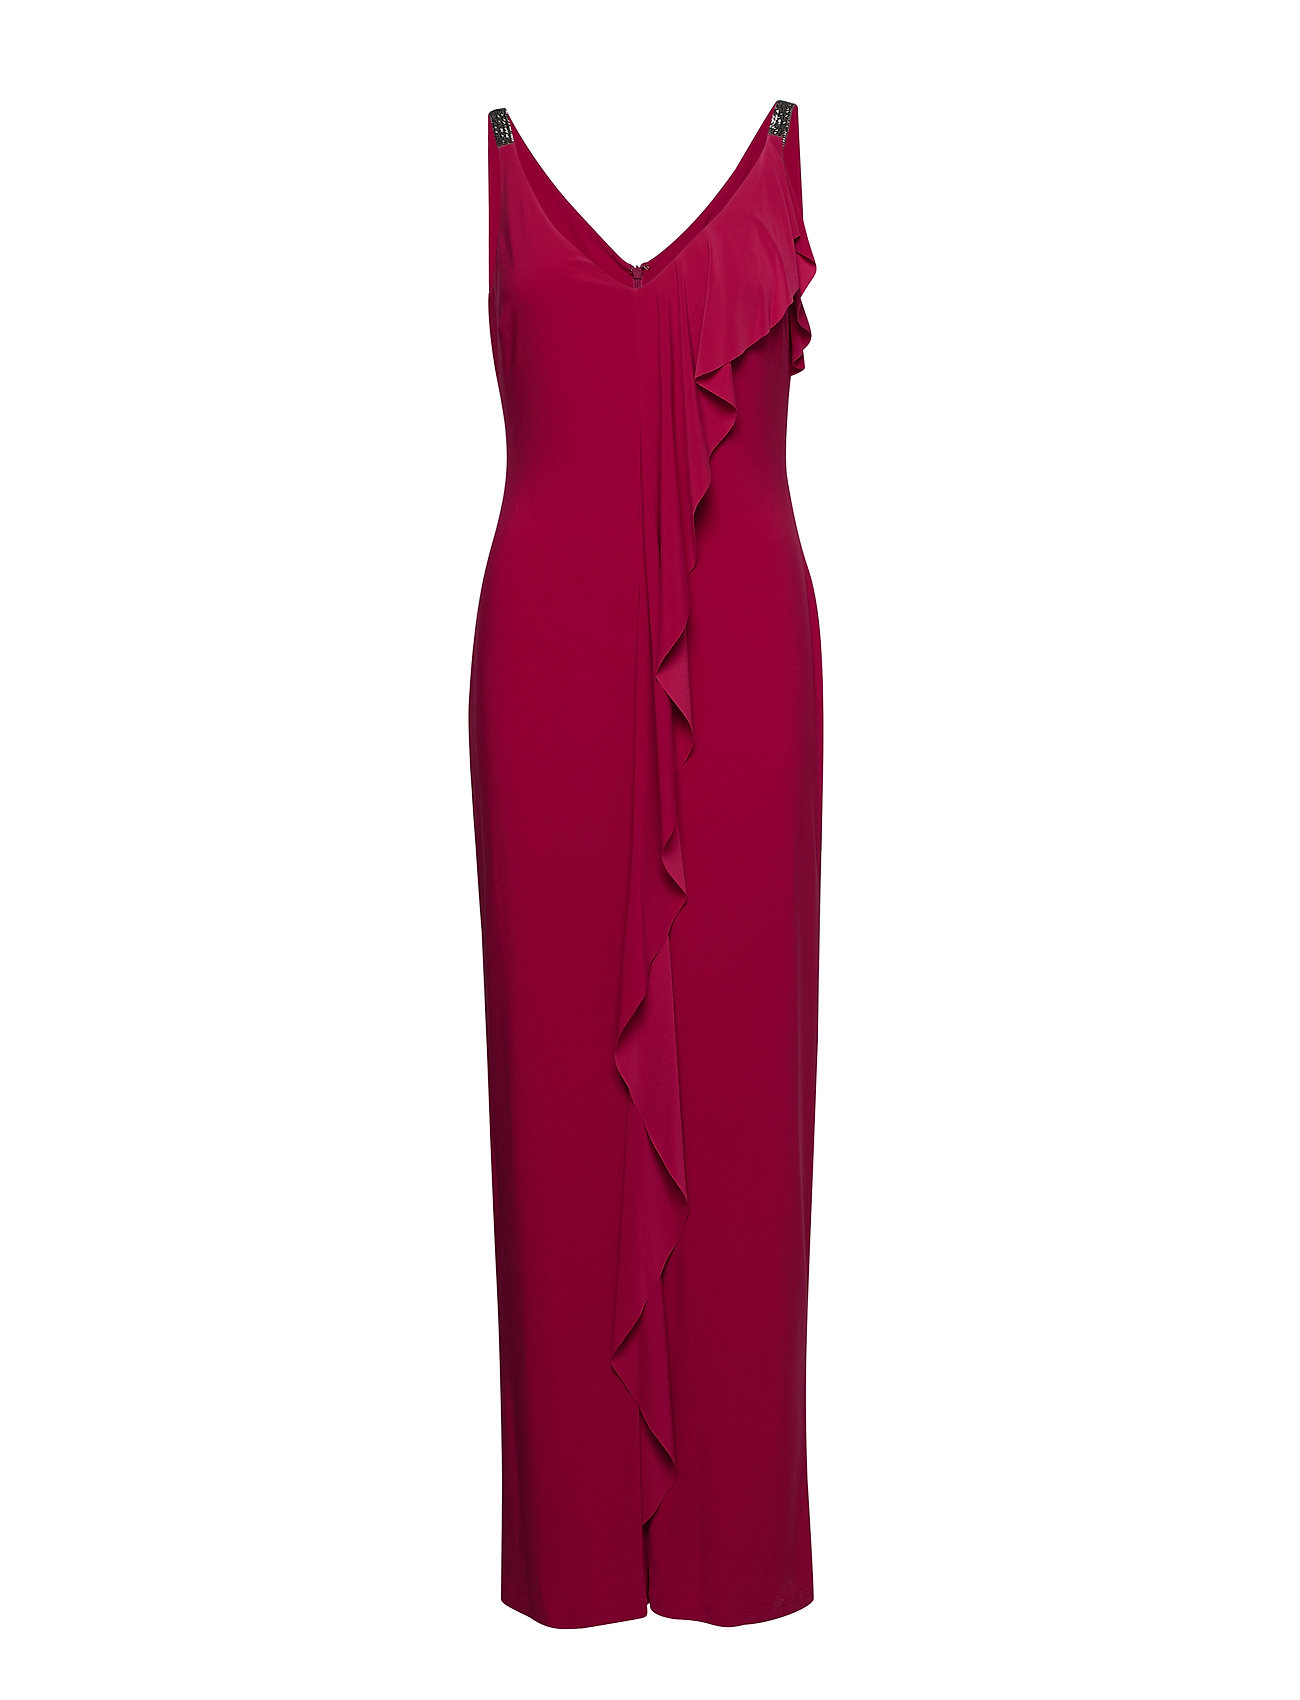 Lauren Ralph Lauren VORIANA-SLEEVELESS-EVENING DRESS - BRIGHT ORCHID